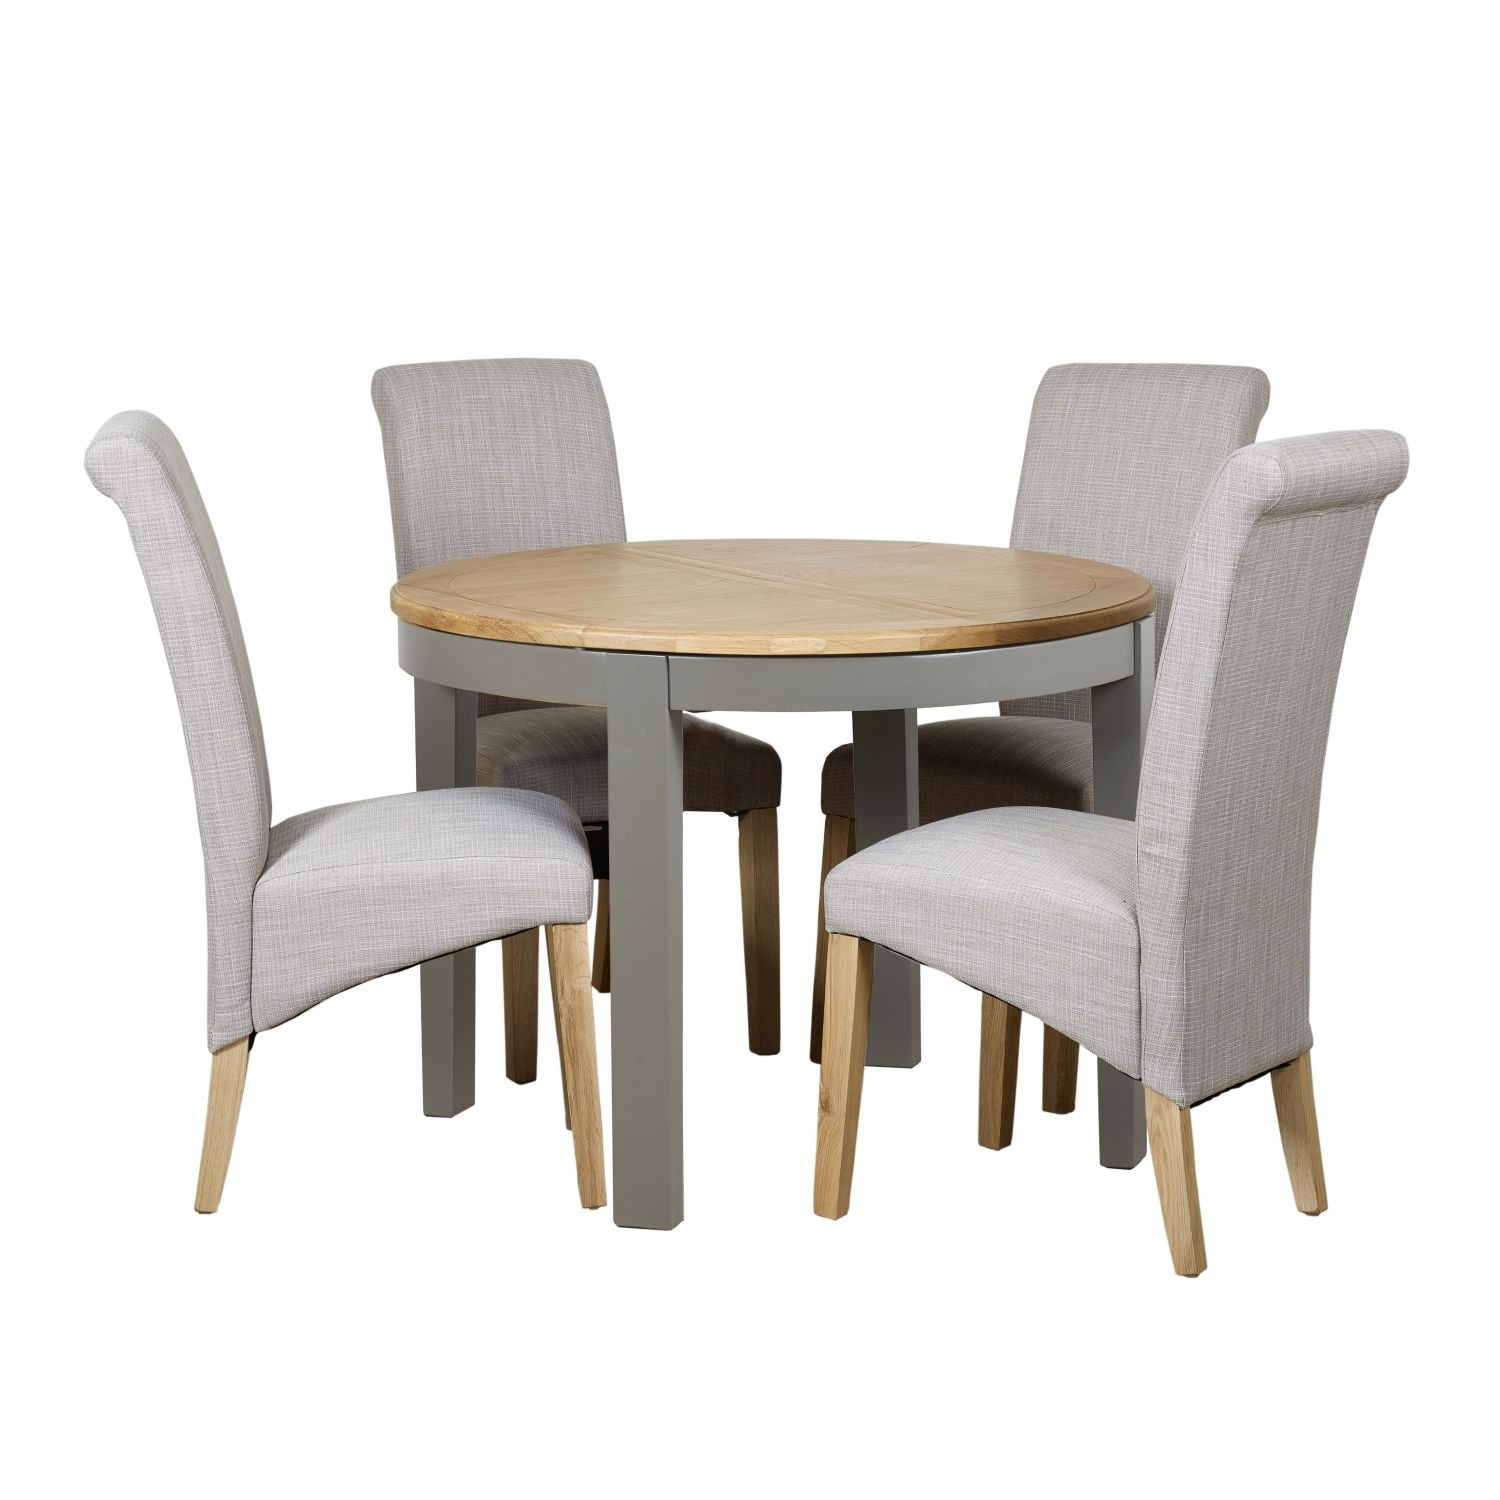 Waterford Round Extending Table & Four Scroll Chairs Dining Set